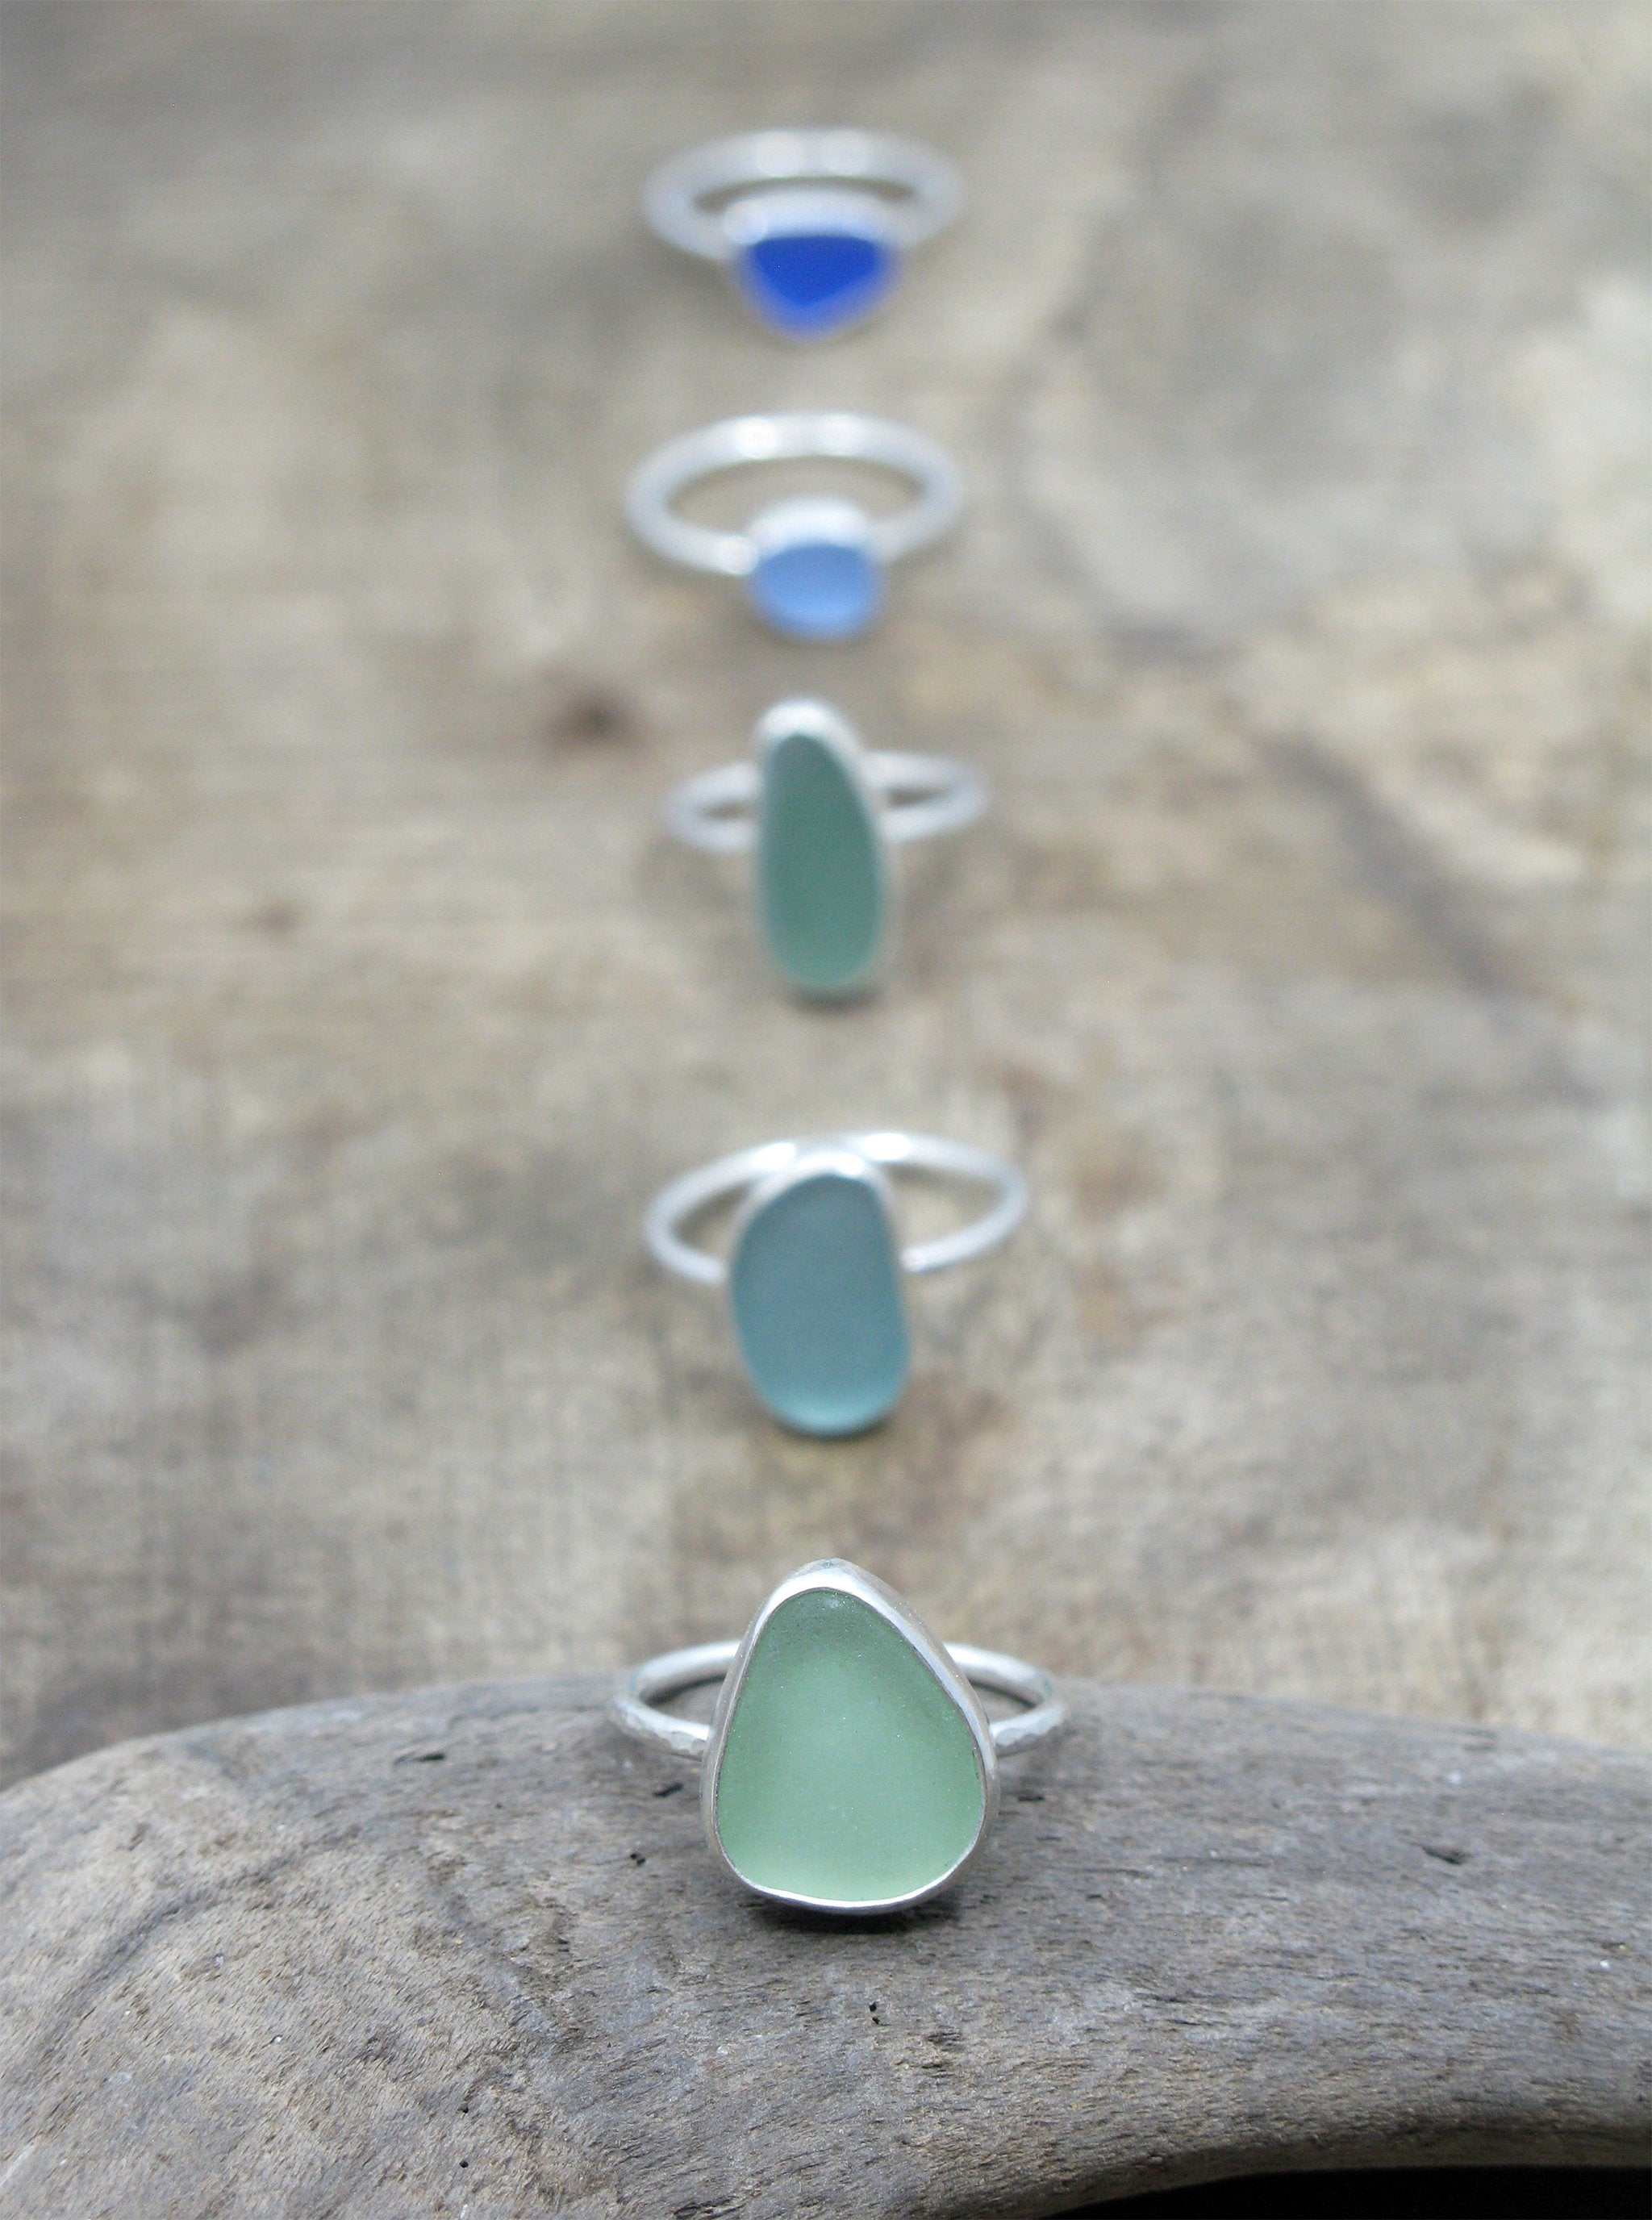 Sea Glass Rings in a Line.